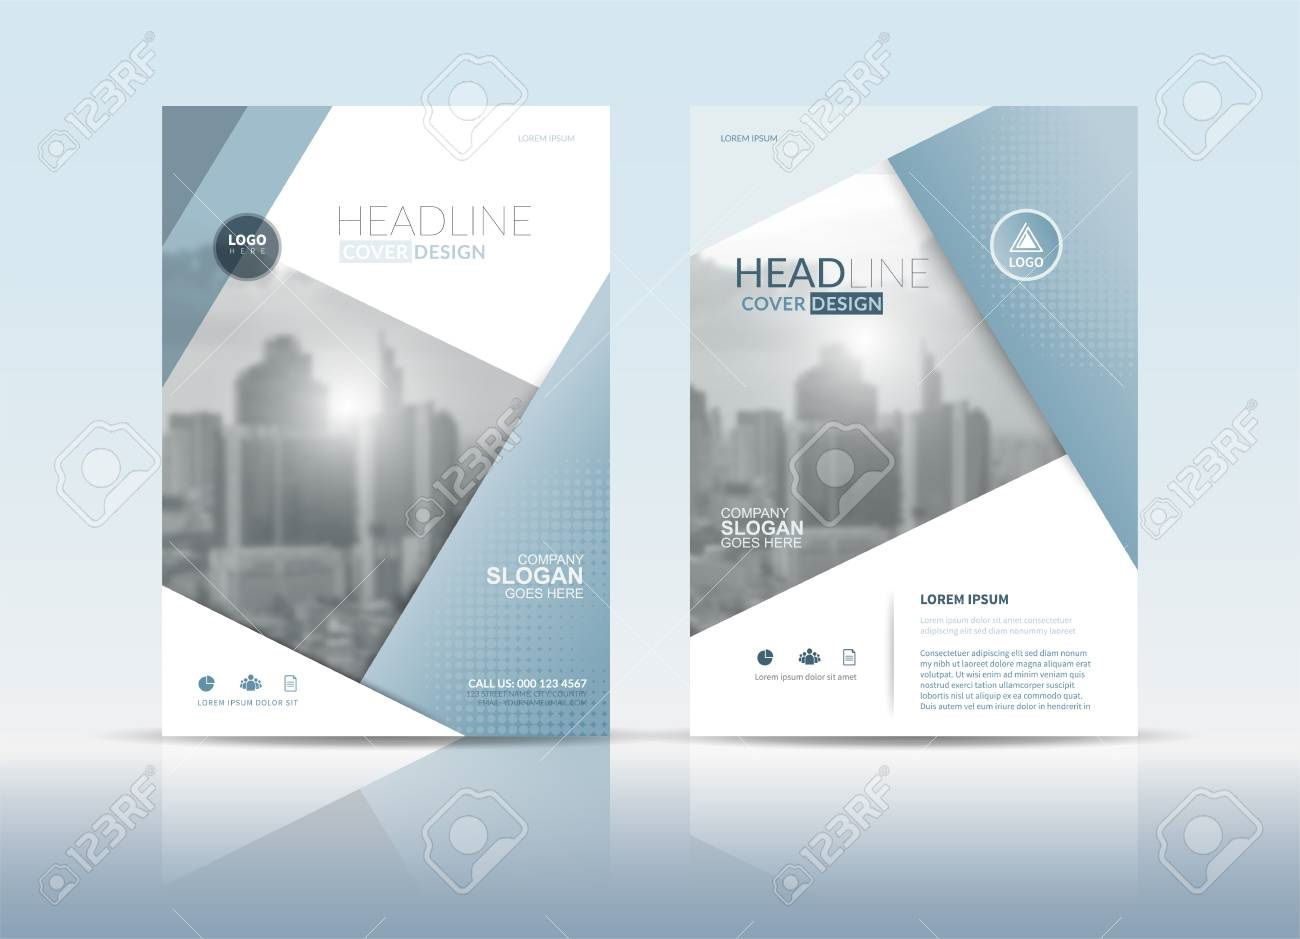 003 Dreaded Free Download Annual Report Cover Design Template Inspiration  Indesign In Word